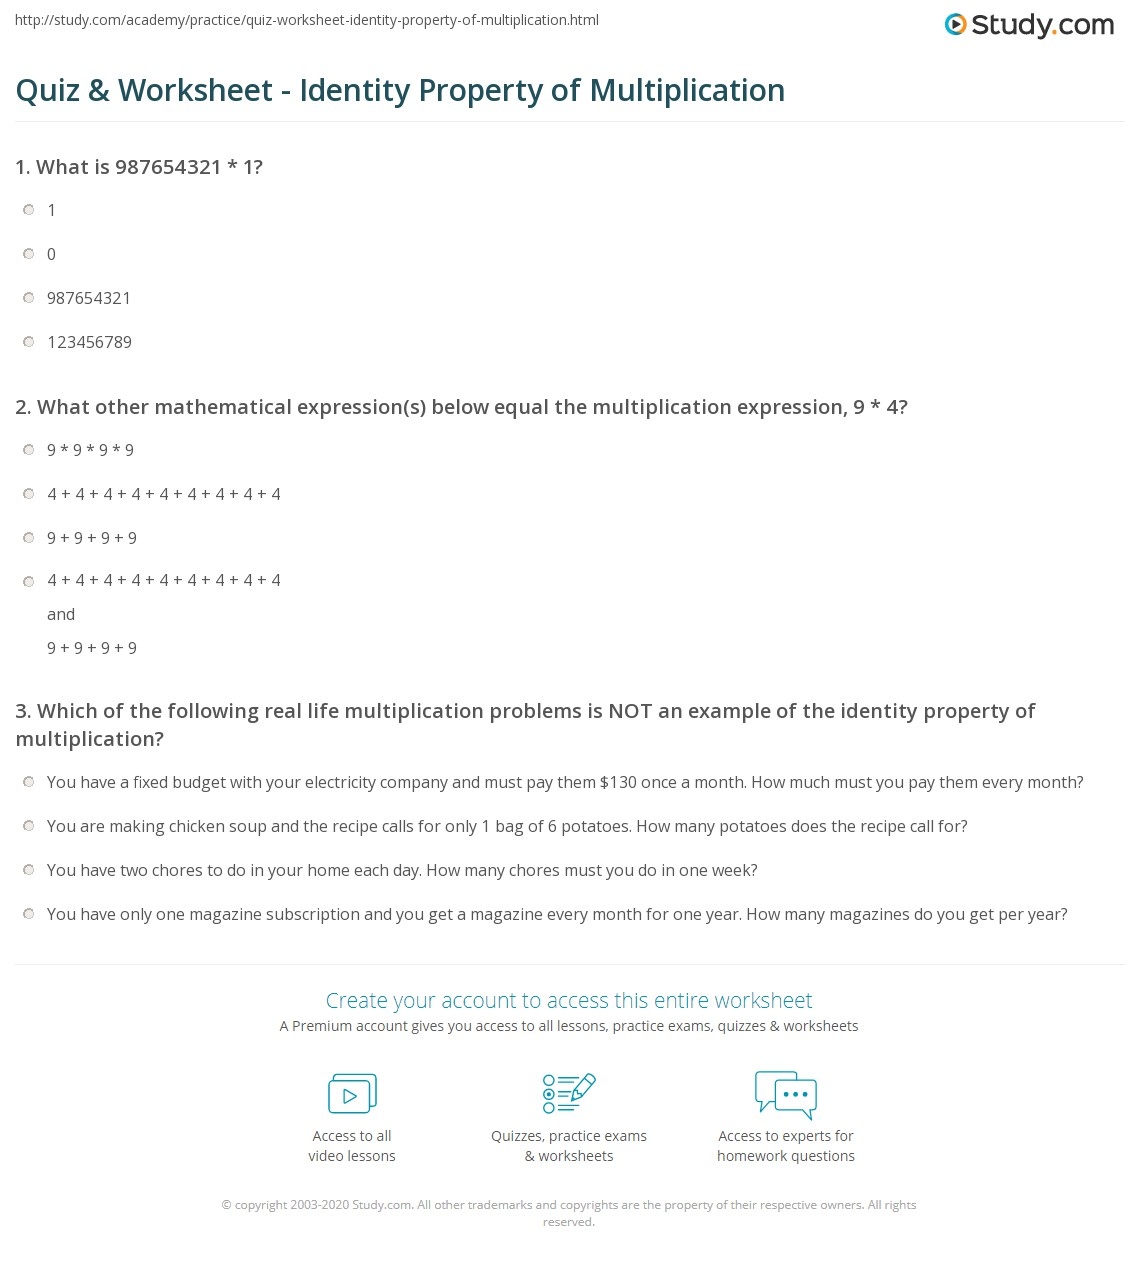 Worksheet Identity Property Of Addition Worksheets